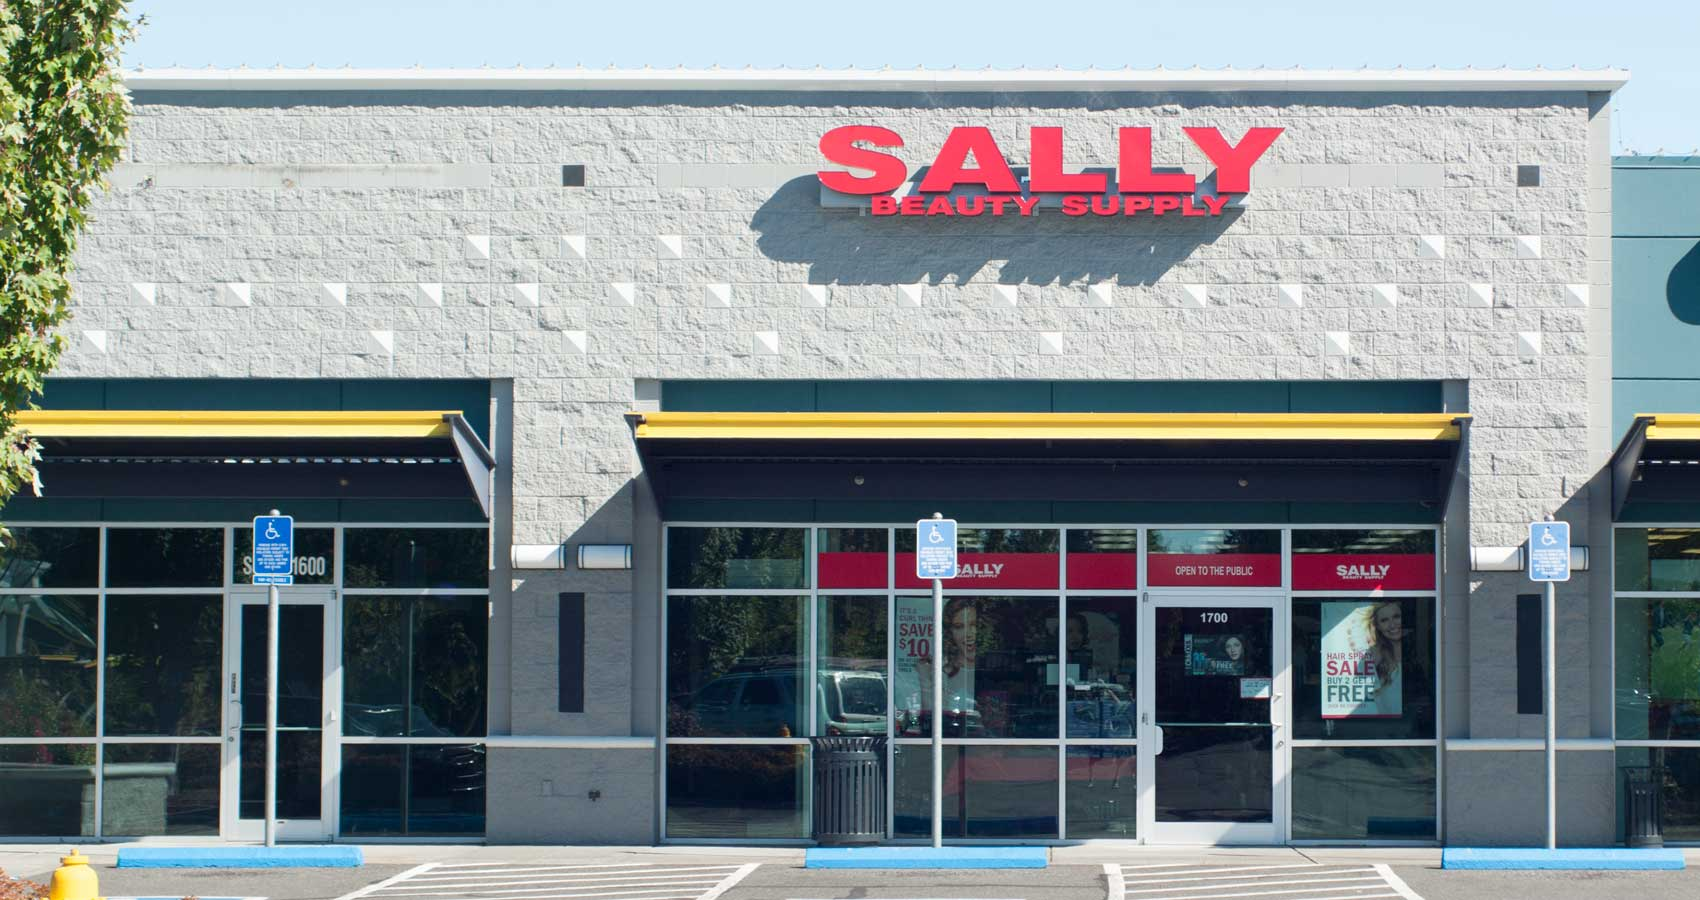 sally beauty supply near me, sallys beauty hours, Sally's beauty supply hours, Beauty supply near me